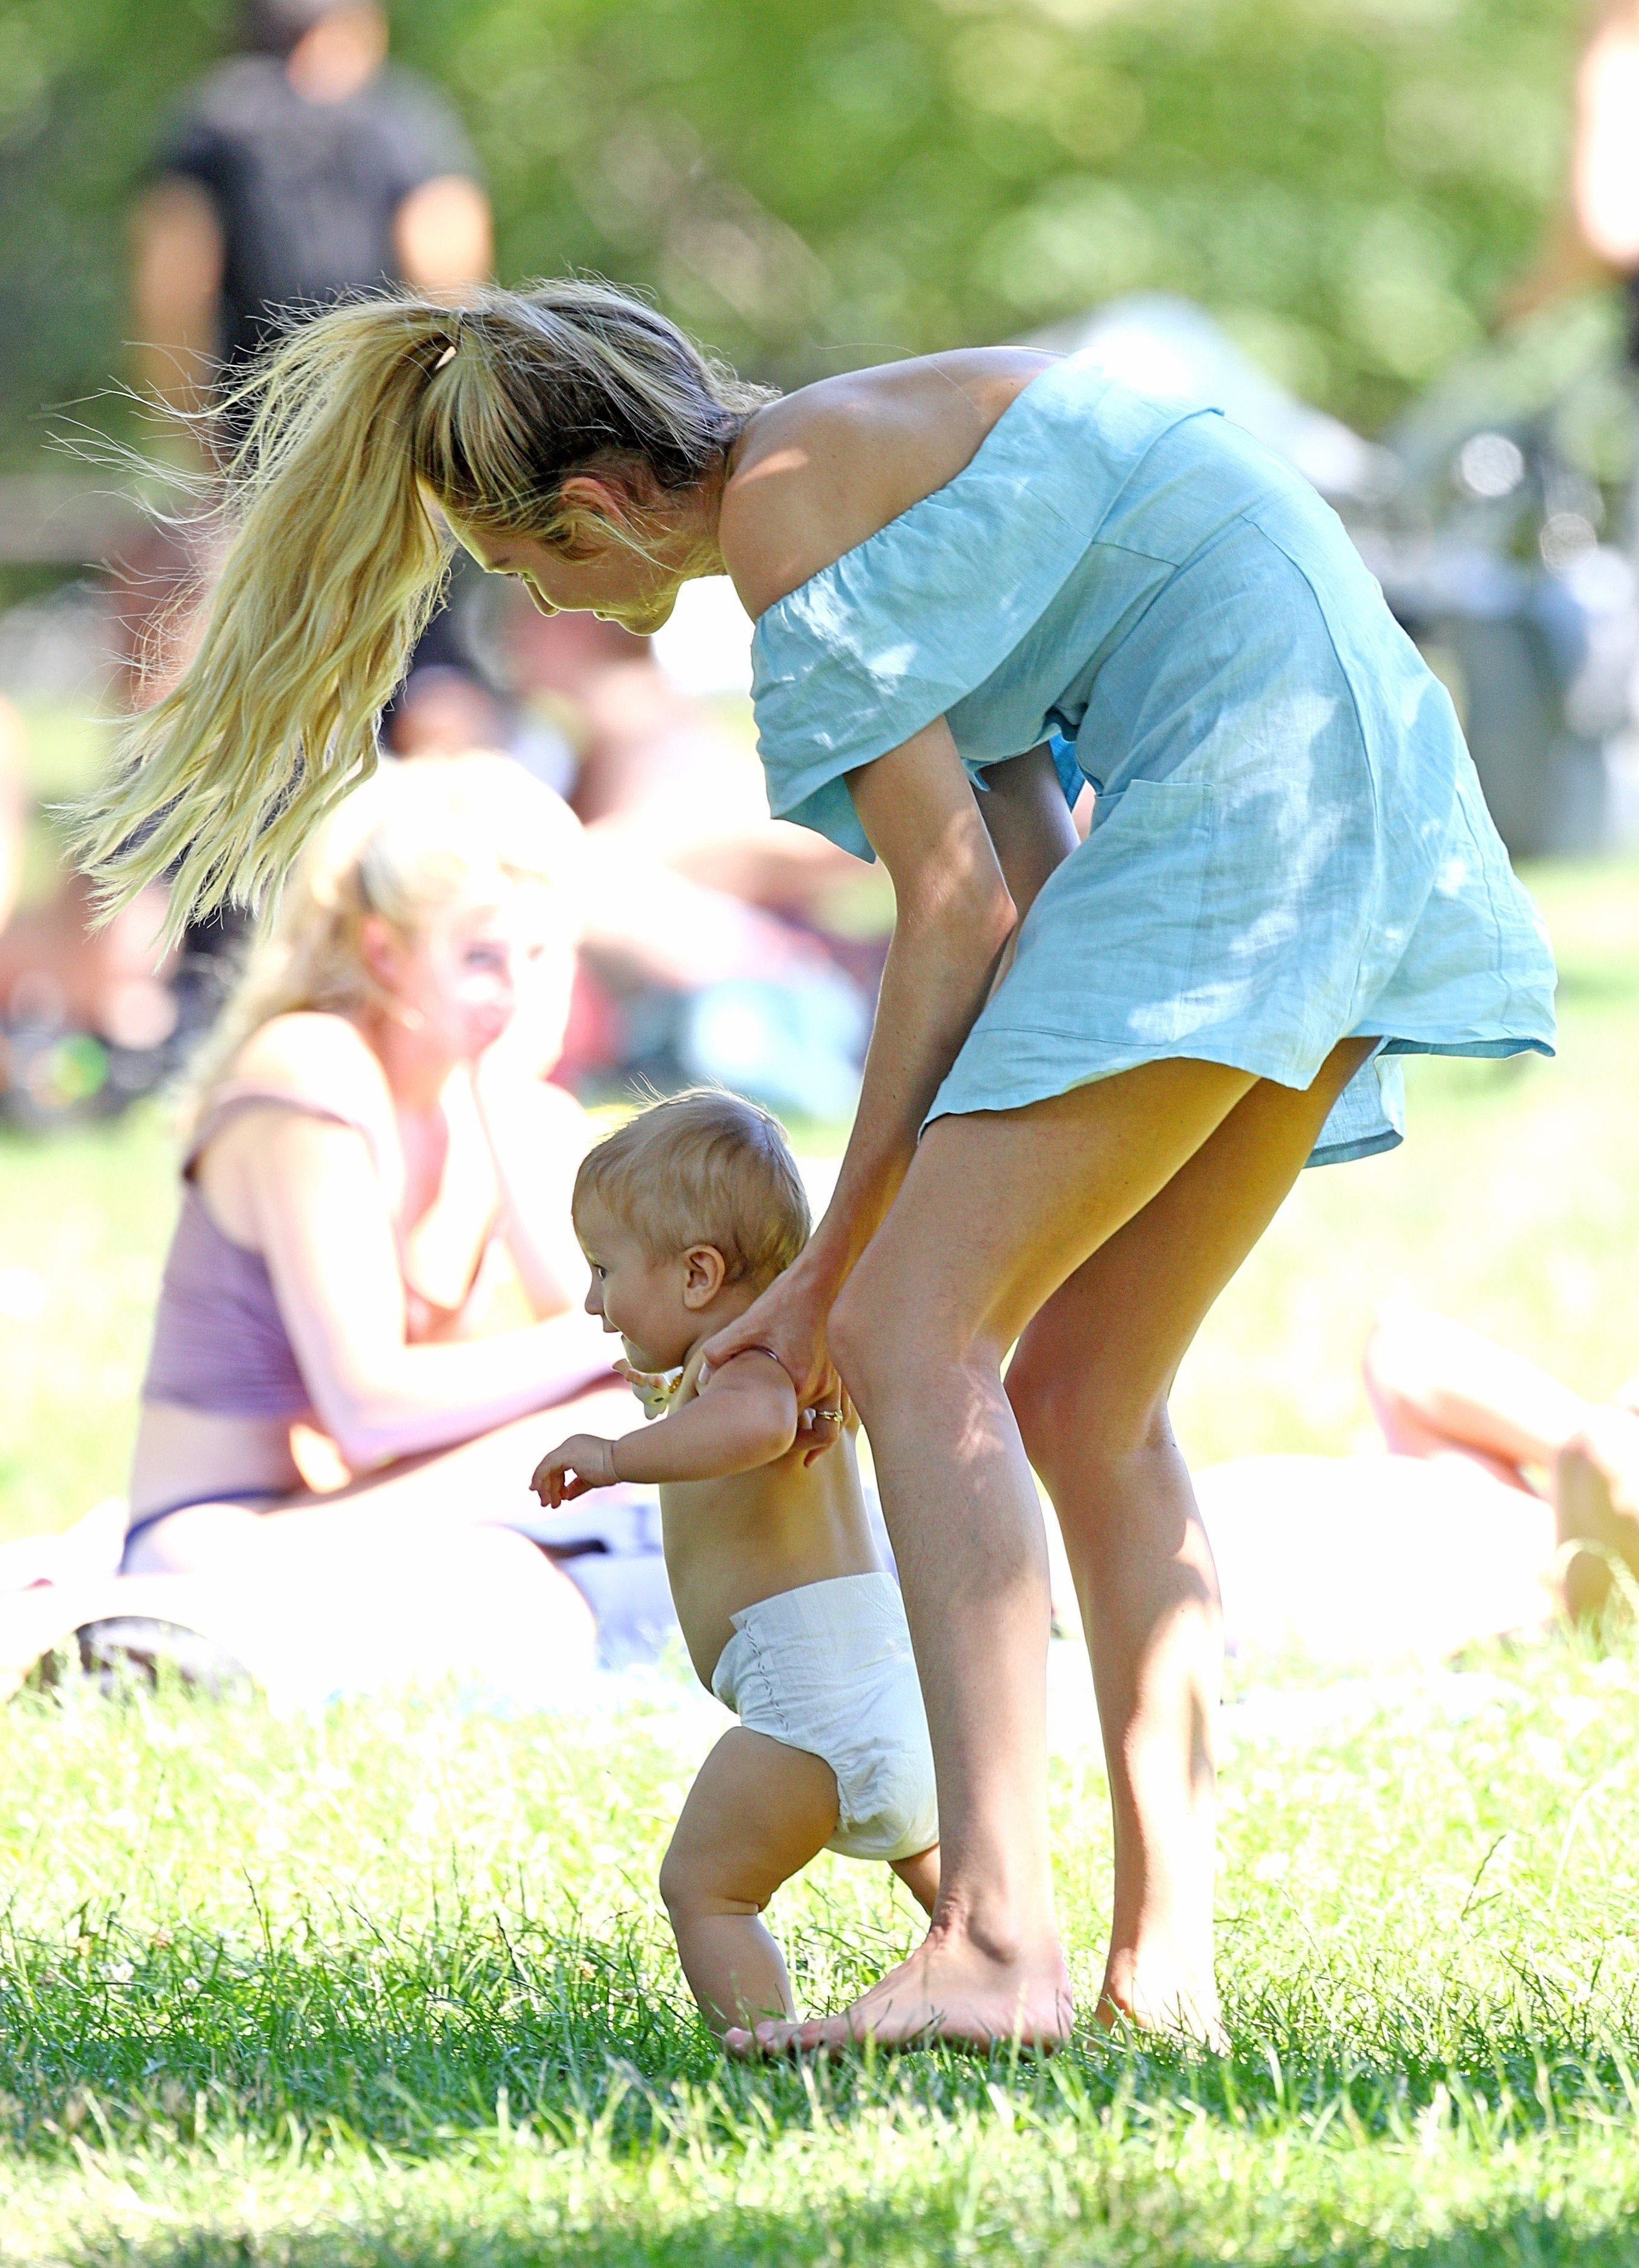 New York, NY  - *EXCLUSIVE*  - Candice Swanepoel and fiance Hermann Nicoli enjoy a day in the park with their son Anaca in New York. Anaca could be seen laughing and smiling as he enjoyed the nice weather in just his diaper.  Pictured: Candice Swanepoel, Anaca Nicoli  BACKGRID USA 3 JULY 2017   USA: +1 310 798 9111 / usasales@backgrid.com  UK: +44 208 344 2007 / uksales@backgrid.com  *UK Clients - Pictures Containing Children Please Pixelate Face Prior To Publication*, Image: 340528573, License: Rights-managed, Restrictions: , Model Release: no, Credit line: Profimedia, AKM-GSI